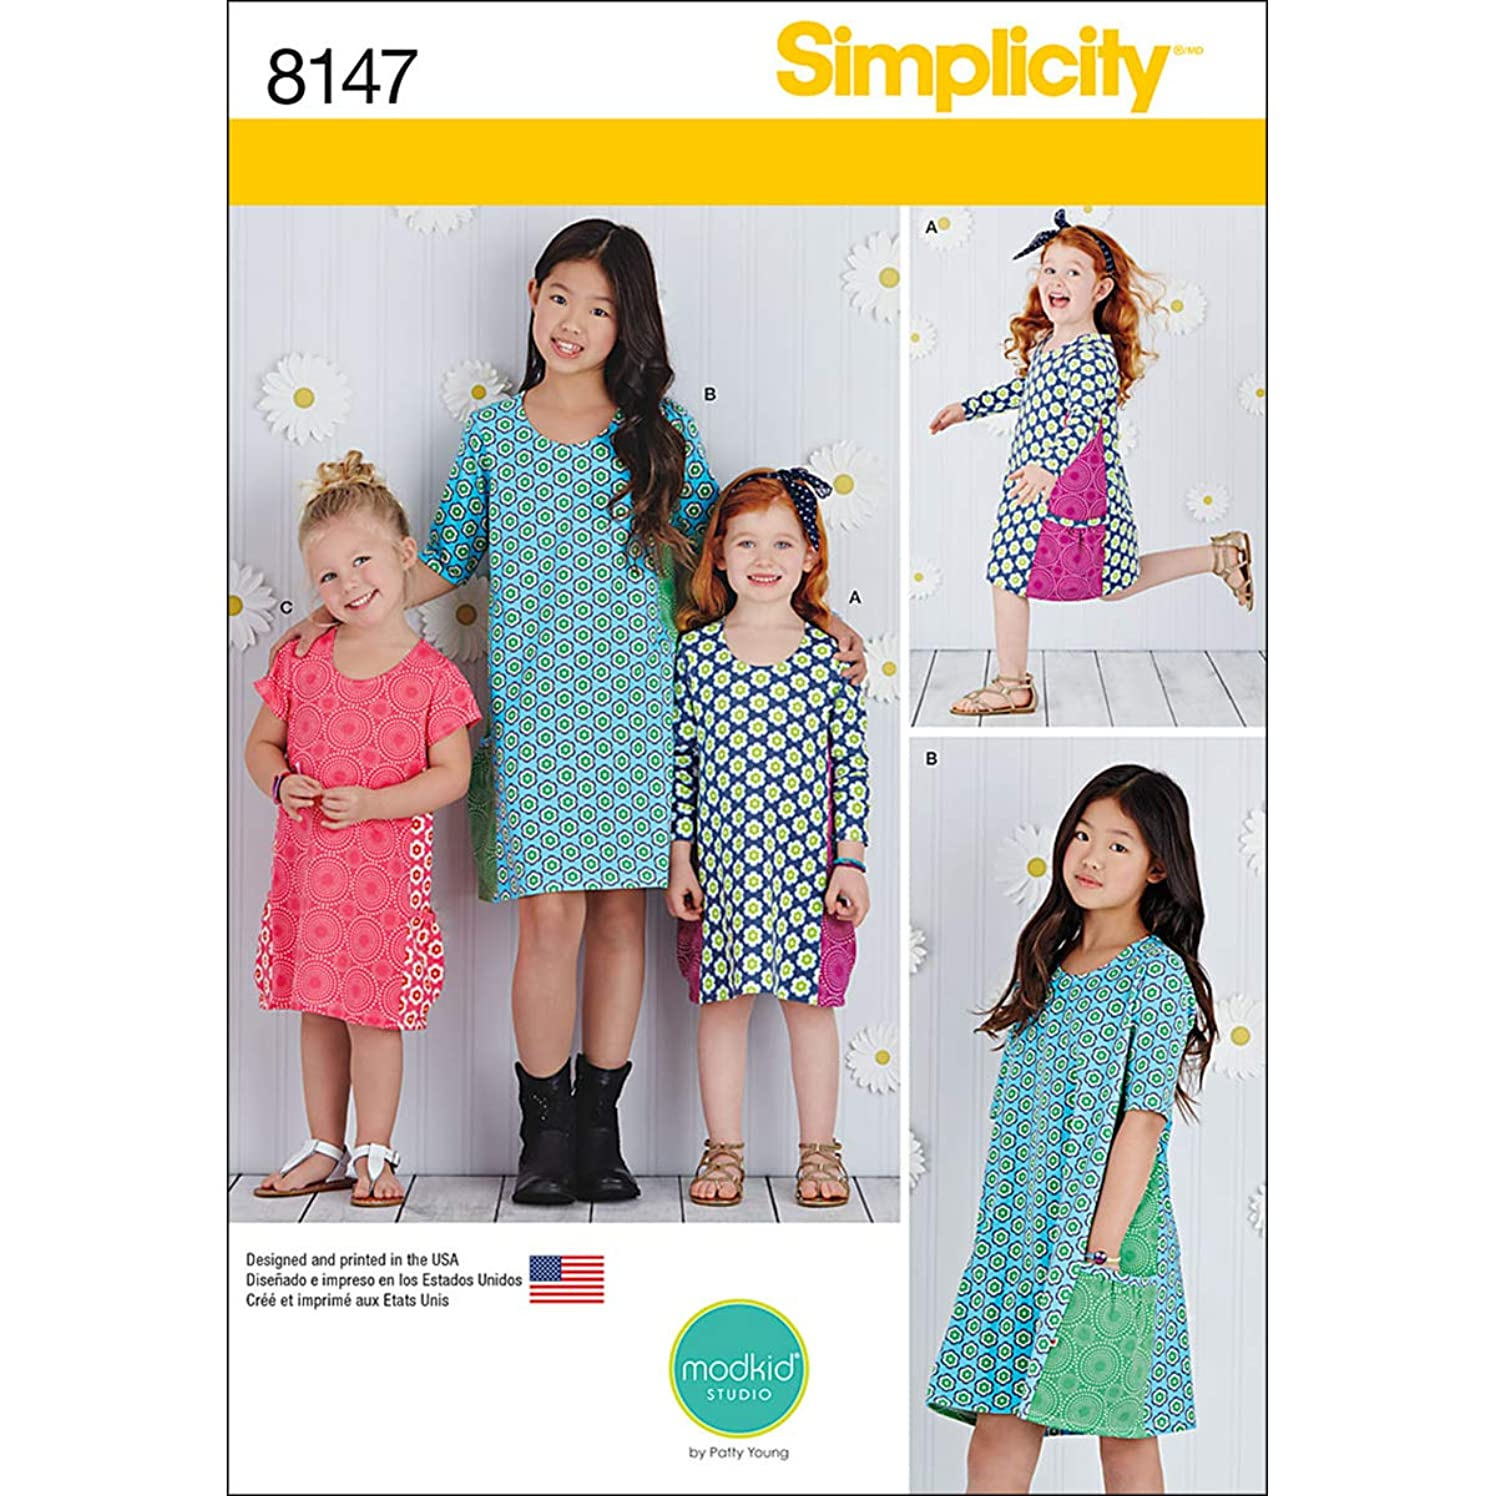 Simplicity Pattern 8147 Child's and Girls' Knit Dresses From Mod Kid Studio, HH (3-4-5-6)